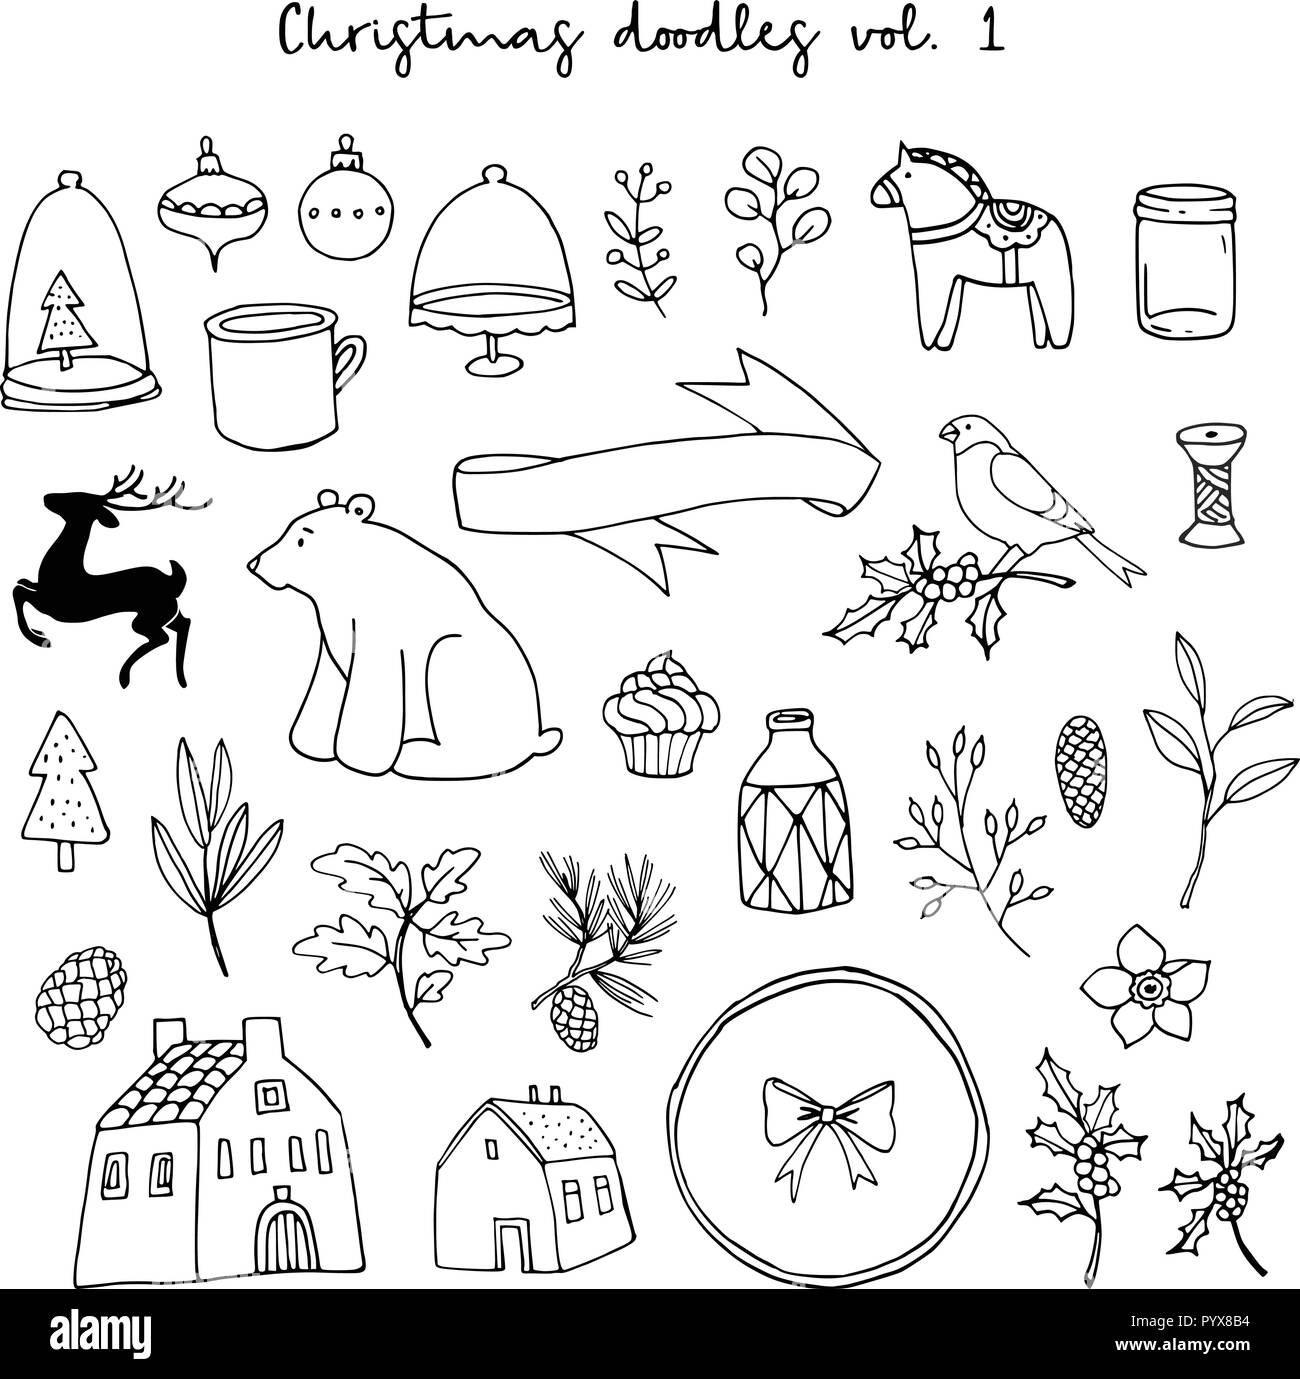 Christmas doodle icons set. Black isolated sketches on white background. Animal, floral, houses and lifestyle vector illustrations. - Stock Image